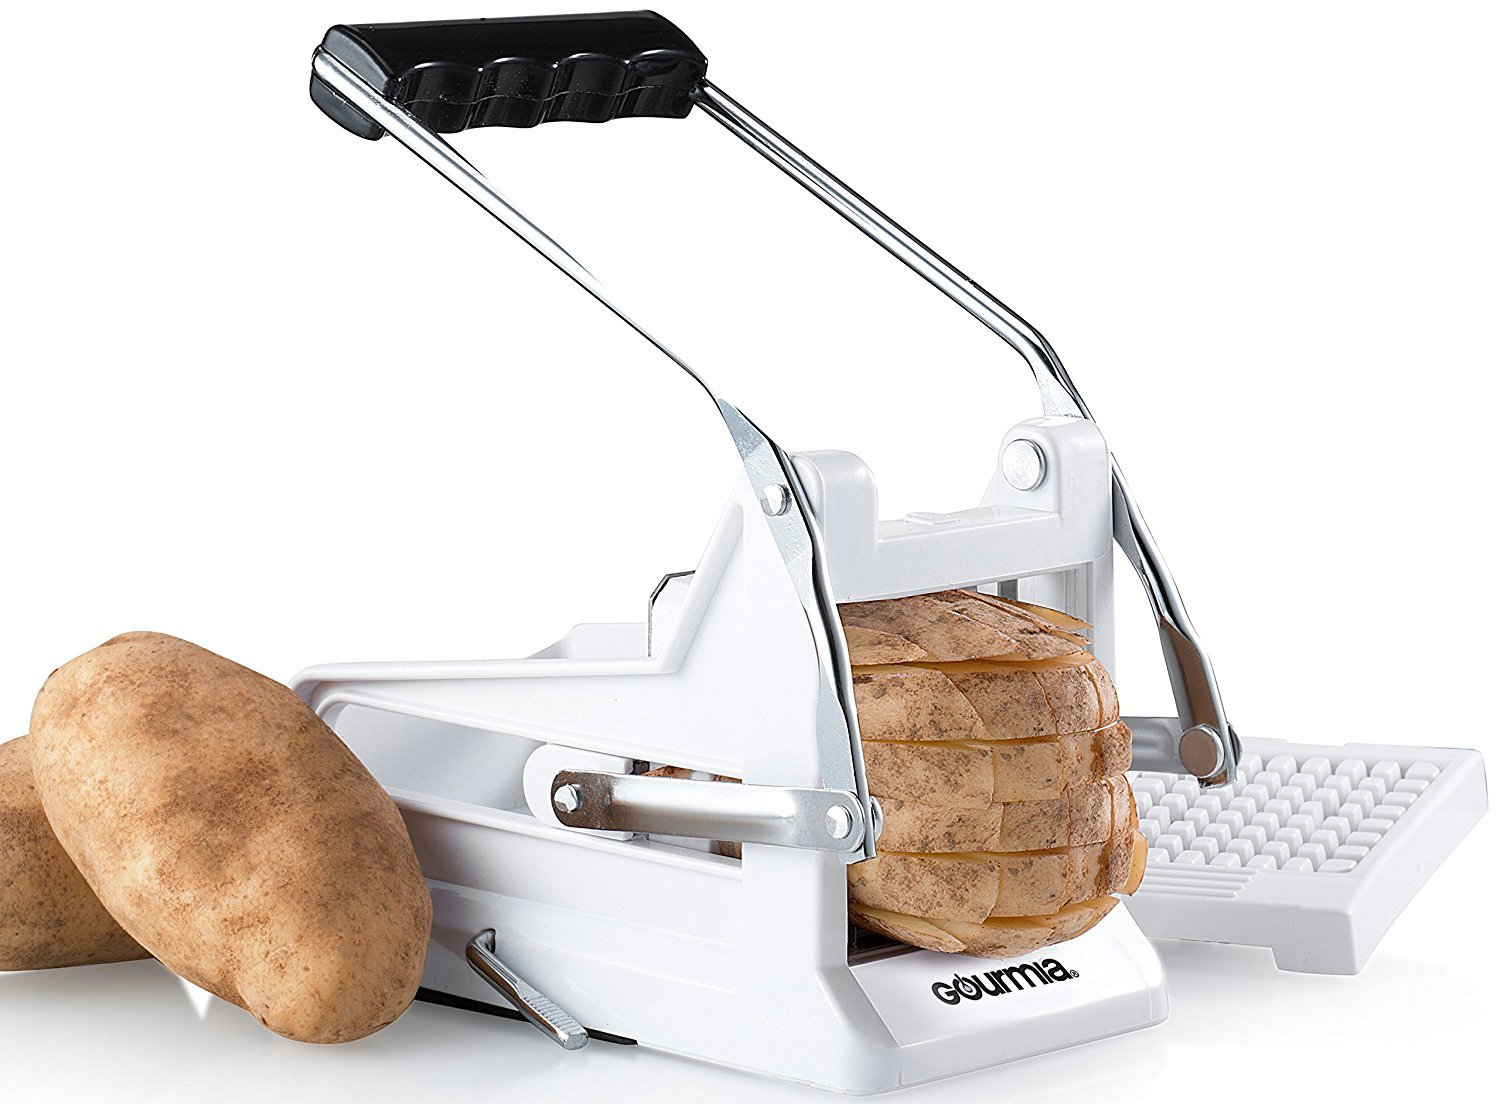 Gourmia GCU9245 French Fry Cutter Professional Potato Slicer With 2 Interchangeable Blades Also Use for Vegetables Like Cucumber, Carrot & More,White